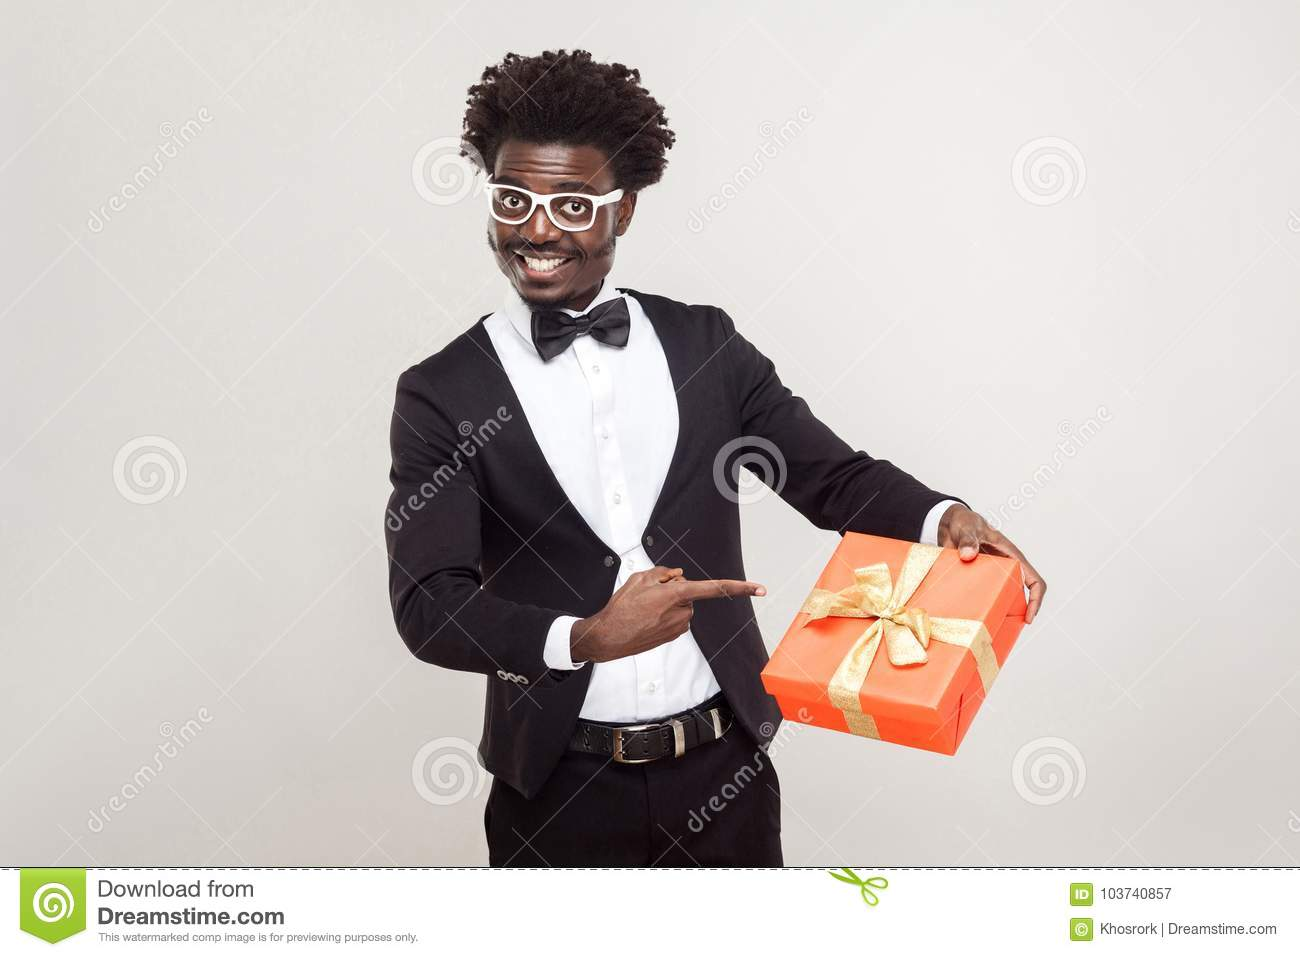 Valentine day. African businessman pointing fingers at gift box